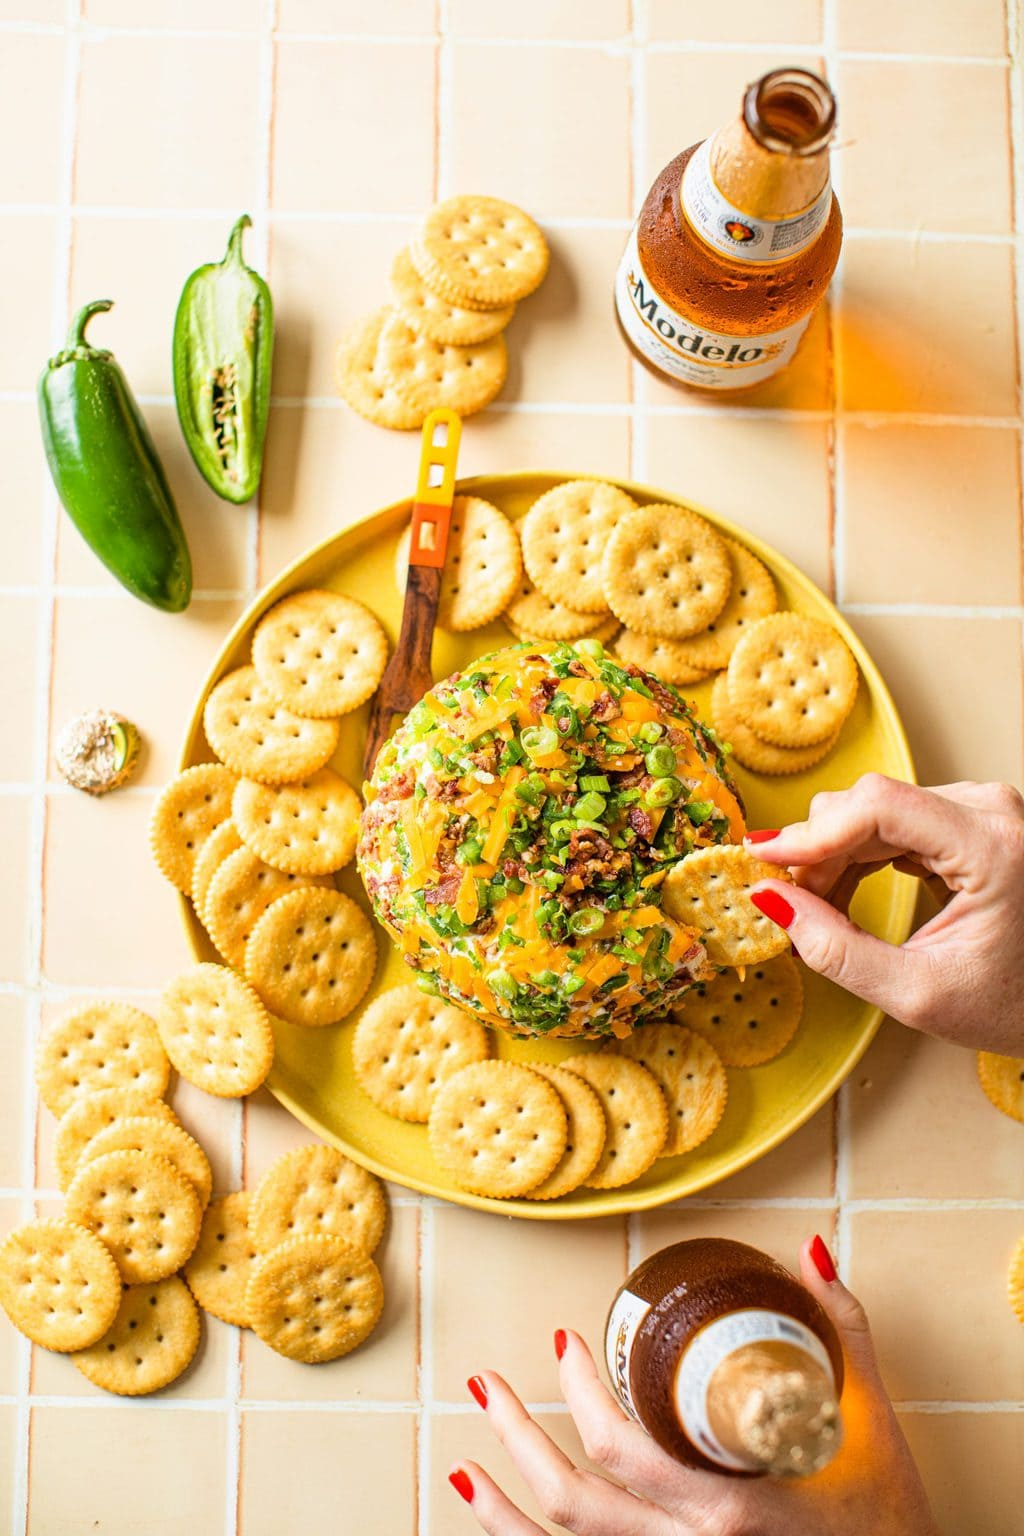 hand dipped in large cheddar cheese ball with crackers